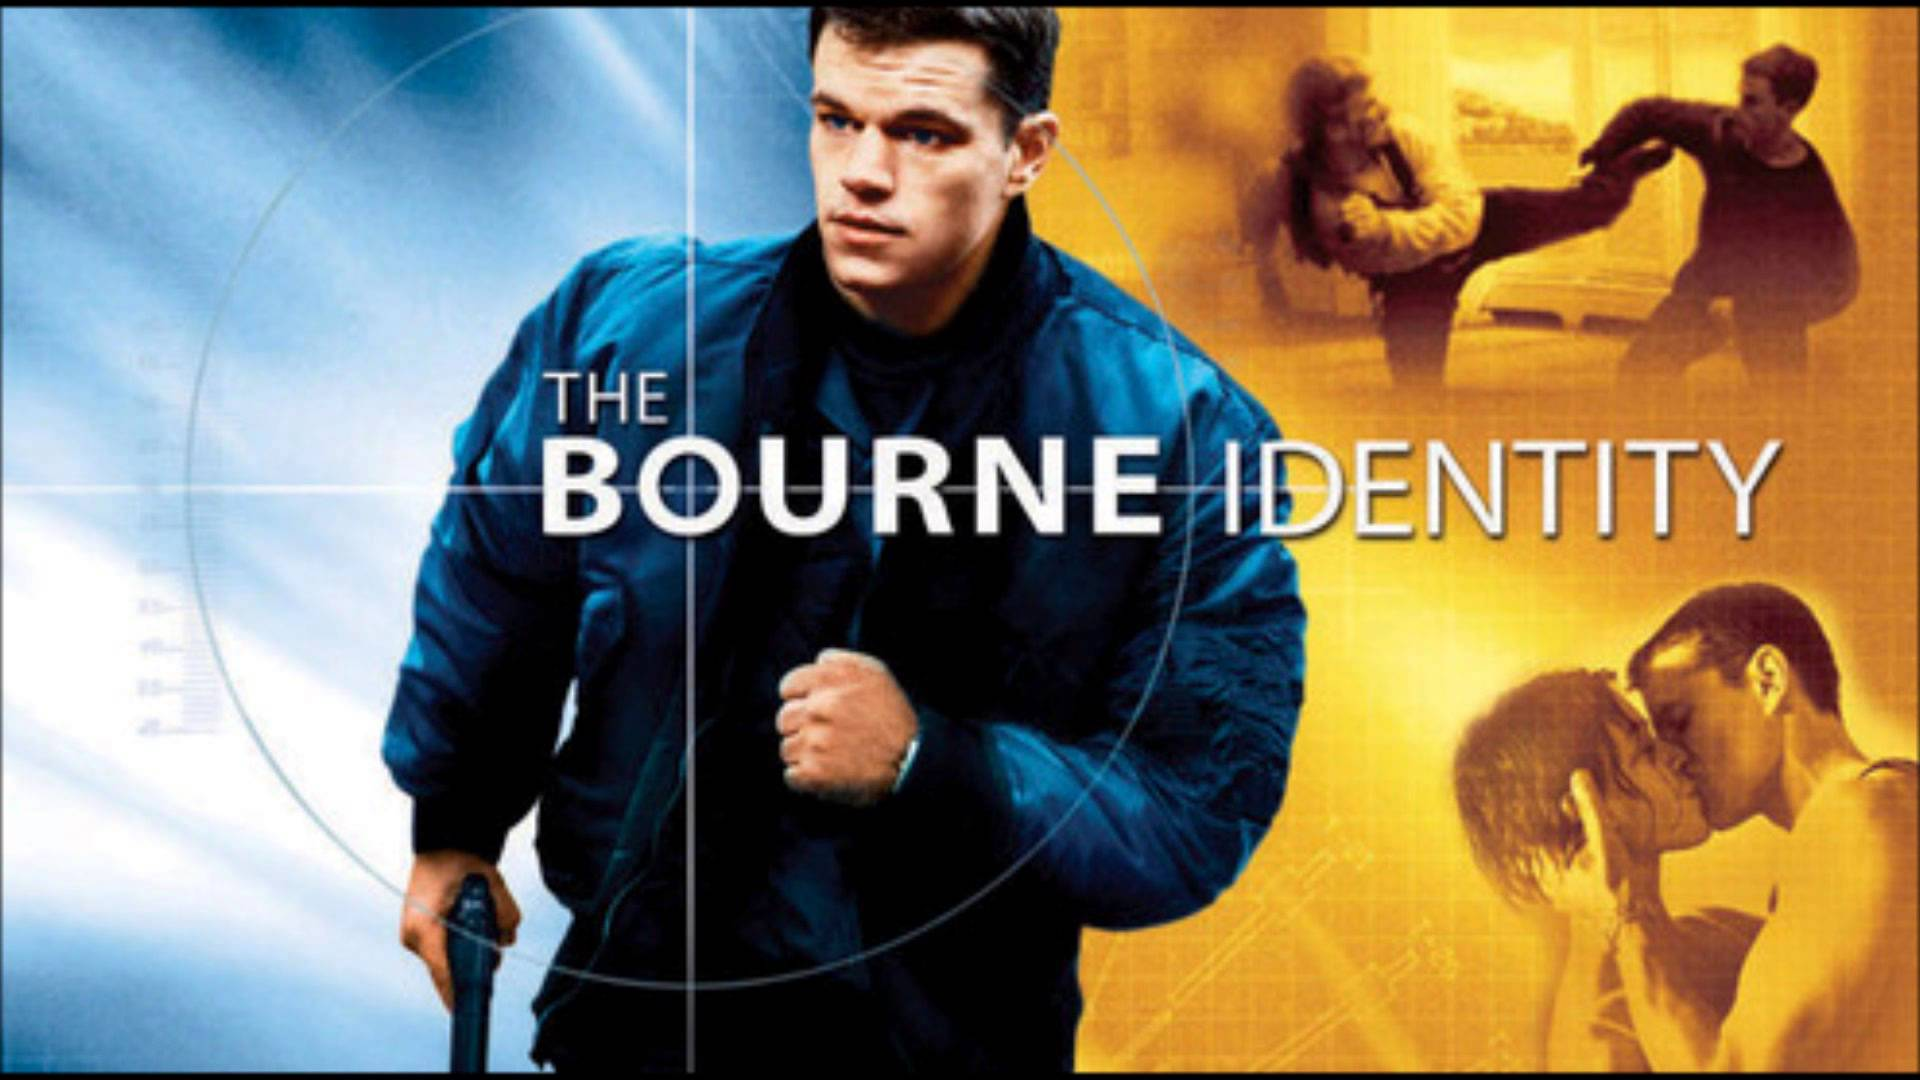 film analysis american thriller the bourne supramacy On june 14, 2002, doug liman and matt damon's thriller the bourne identity hit theaters, kick-starting an action franchise that has spanned five films so far in paris, prague, italy and greece and john powell's pulsating score all ease us comfortably into that shadowy movie world of assassins and spies.